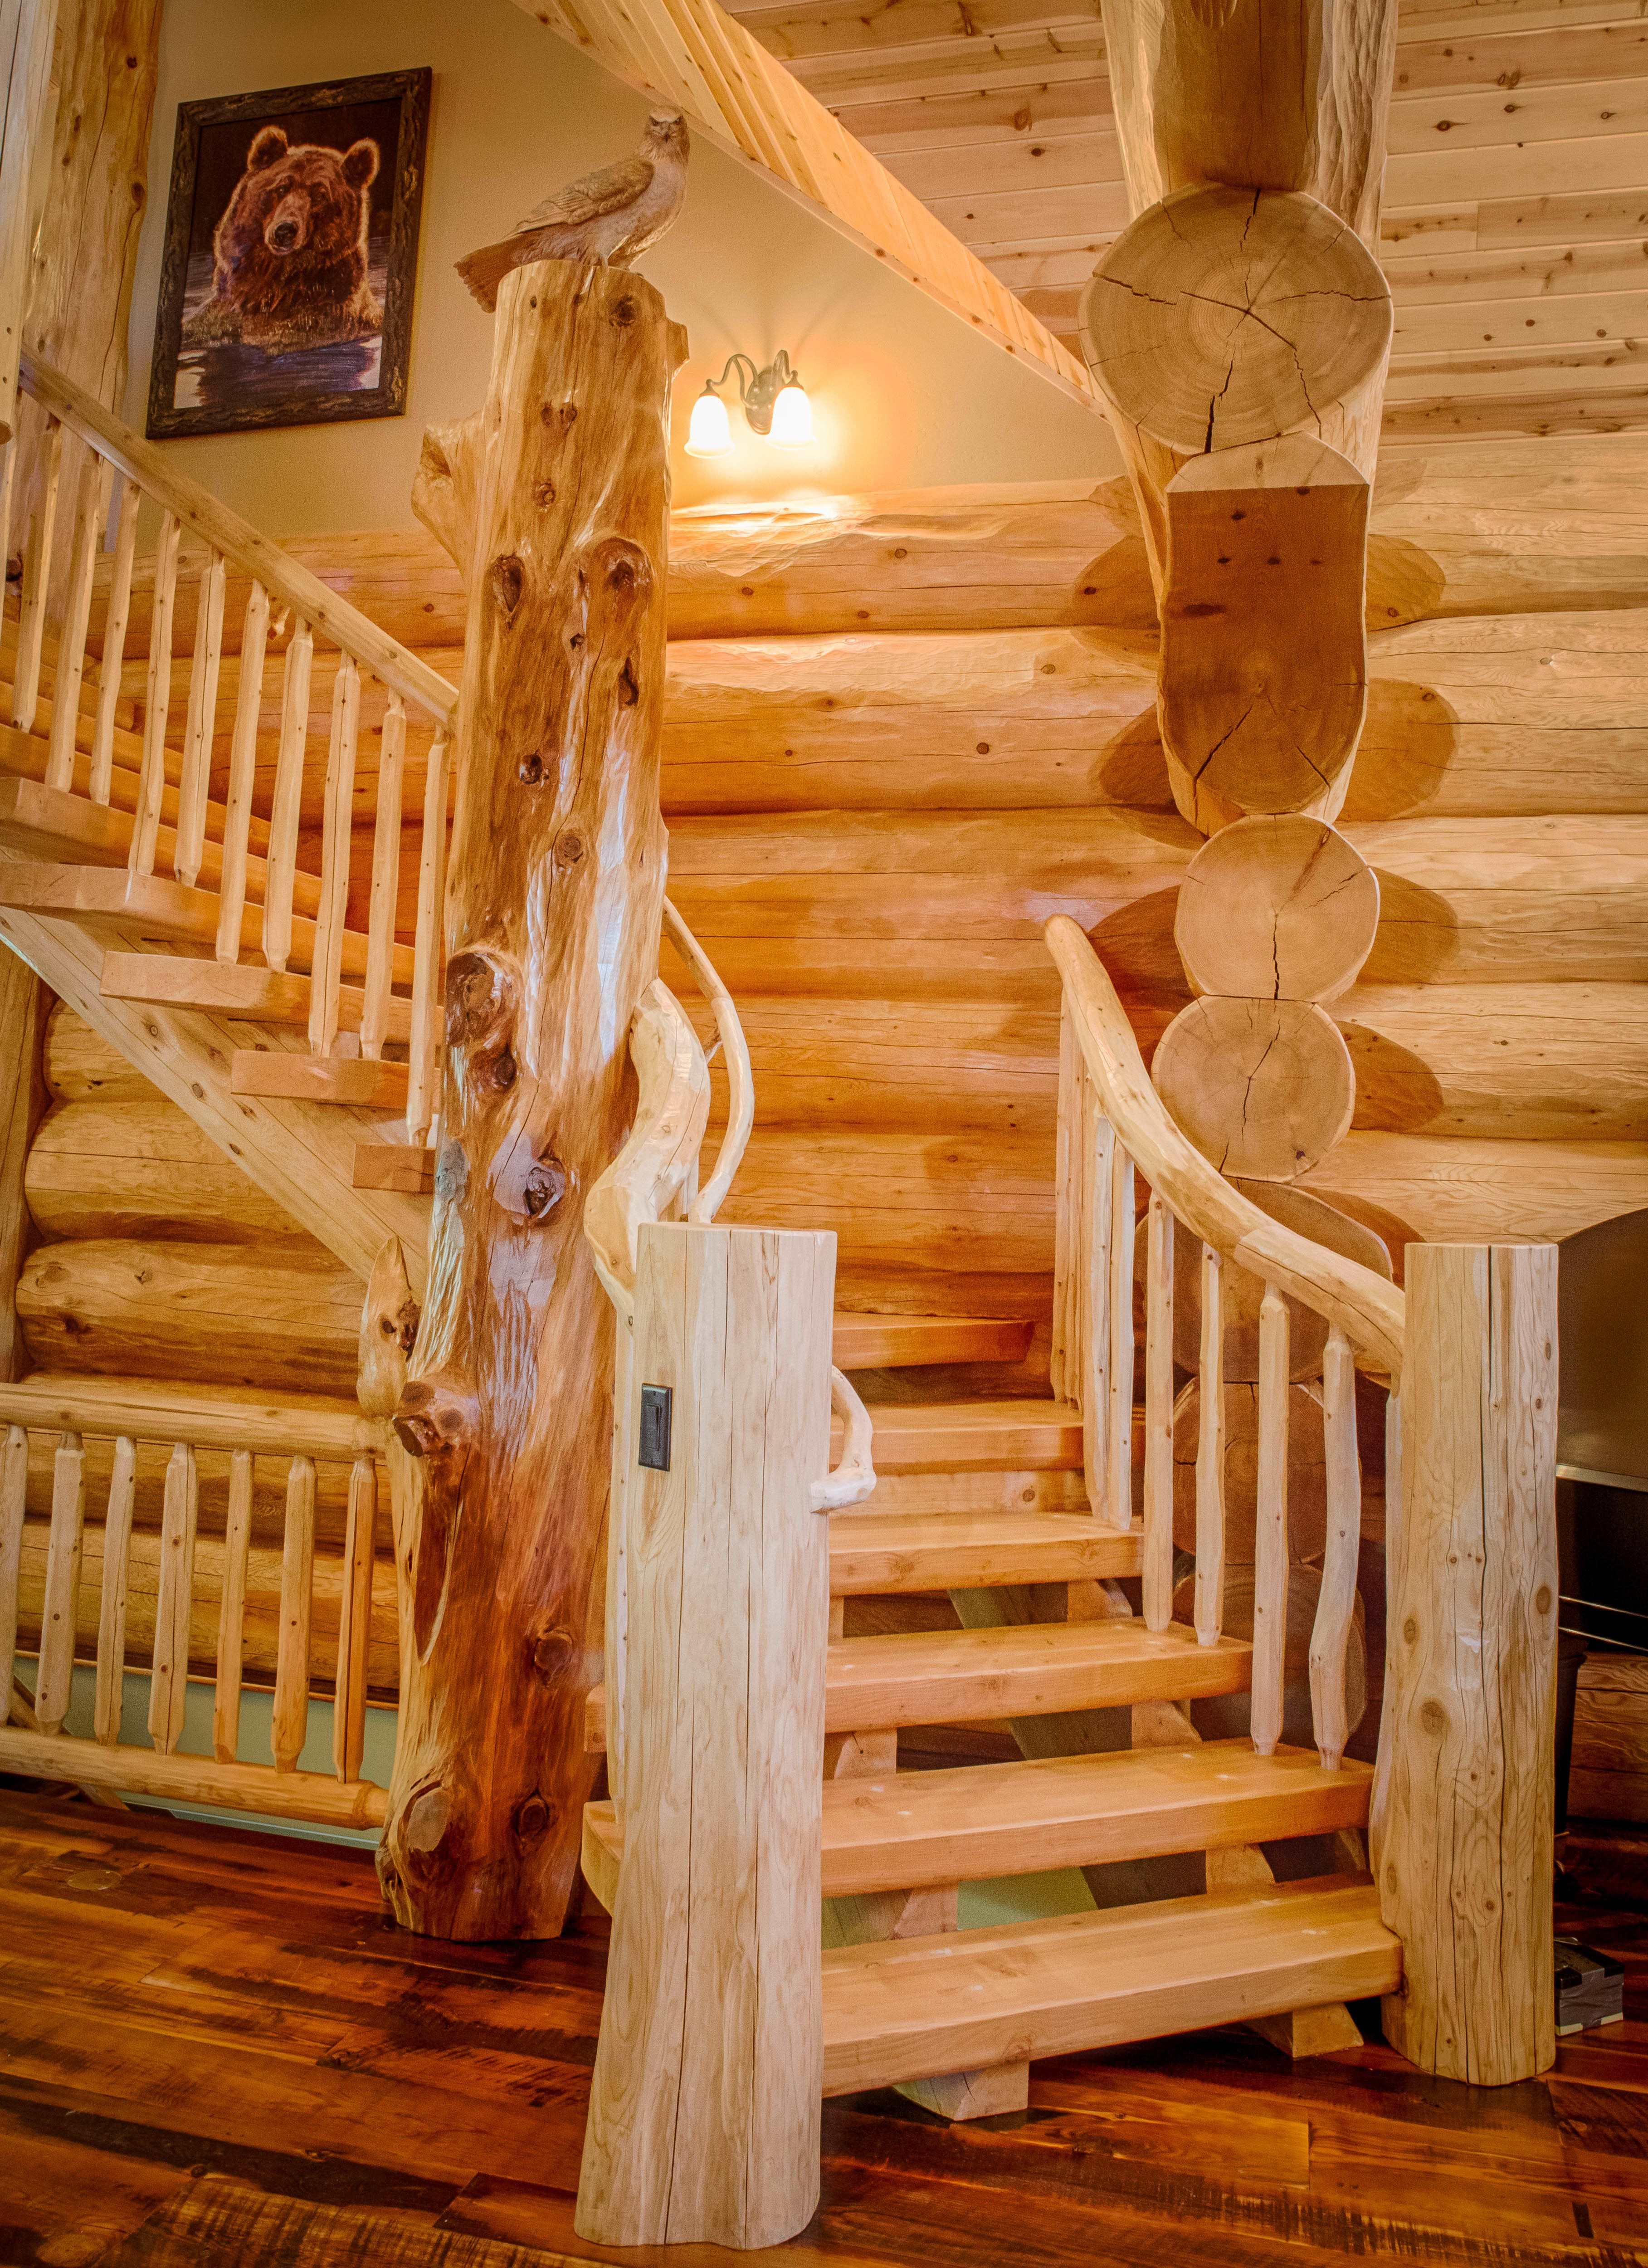 Rustic Log Cabin Homes Interiors Stairs